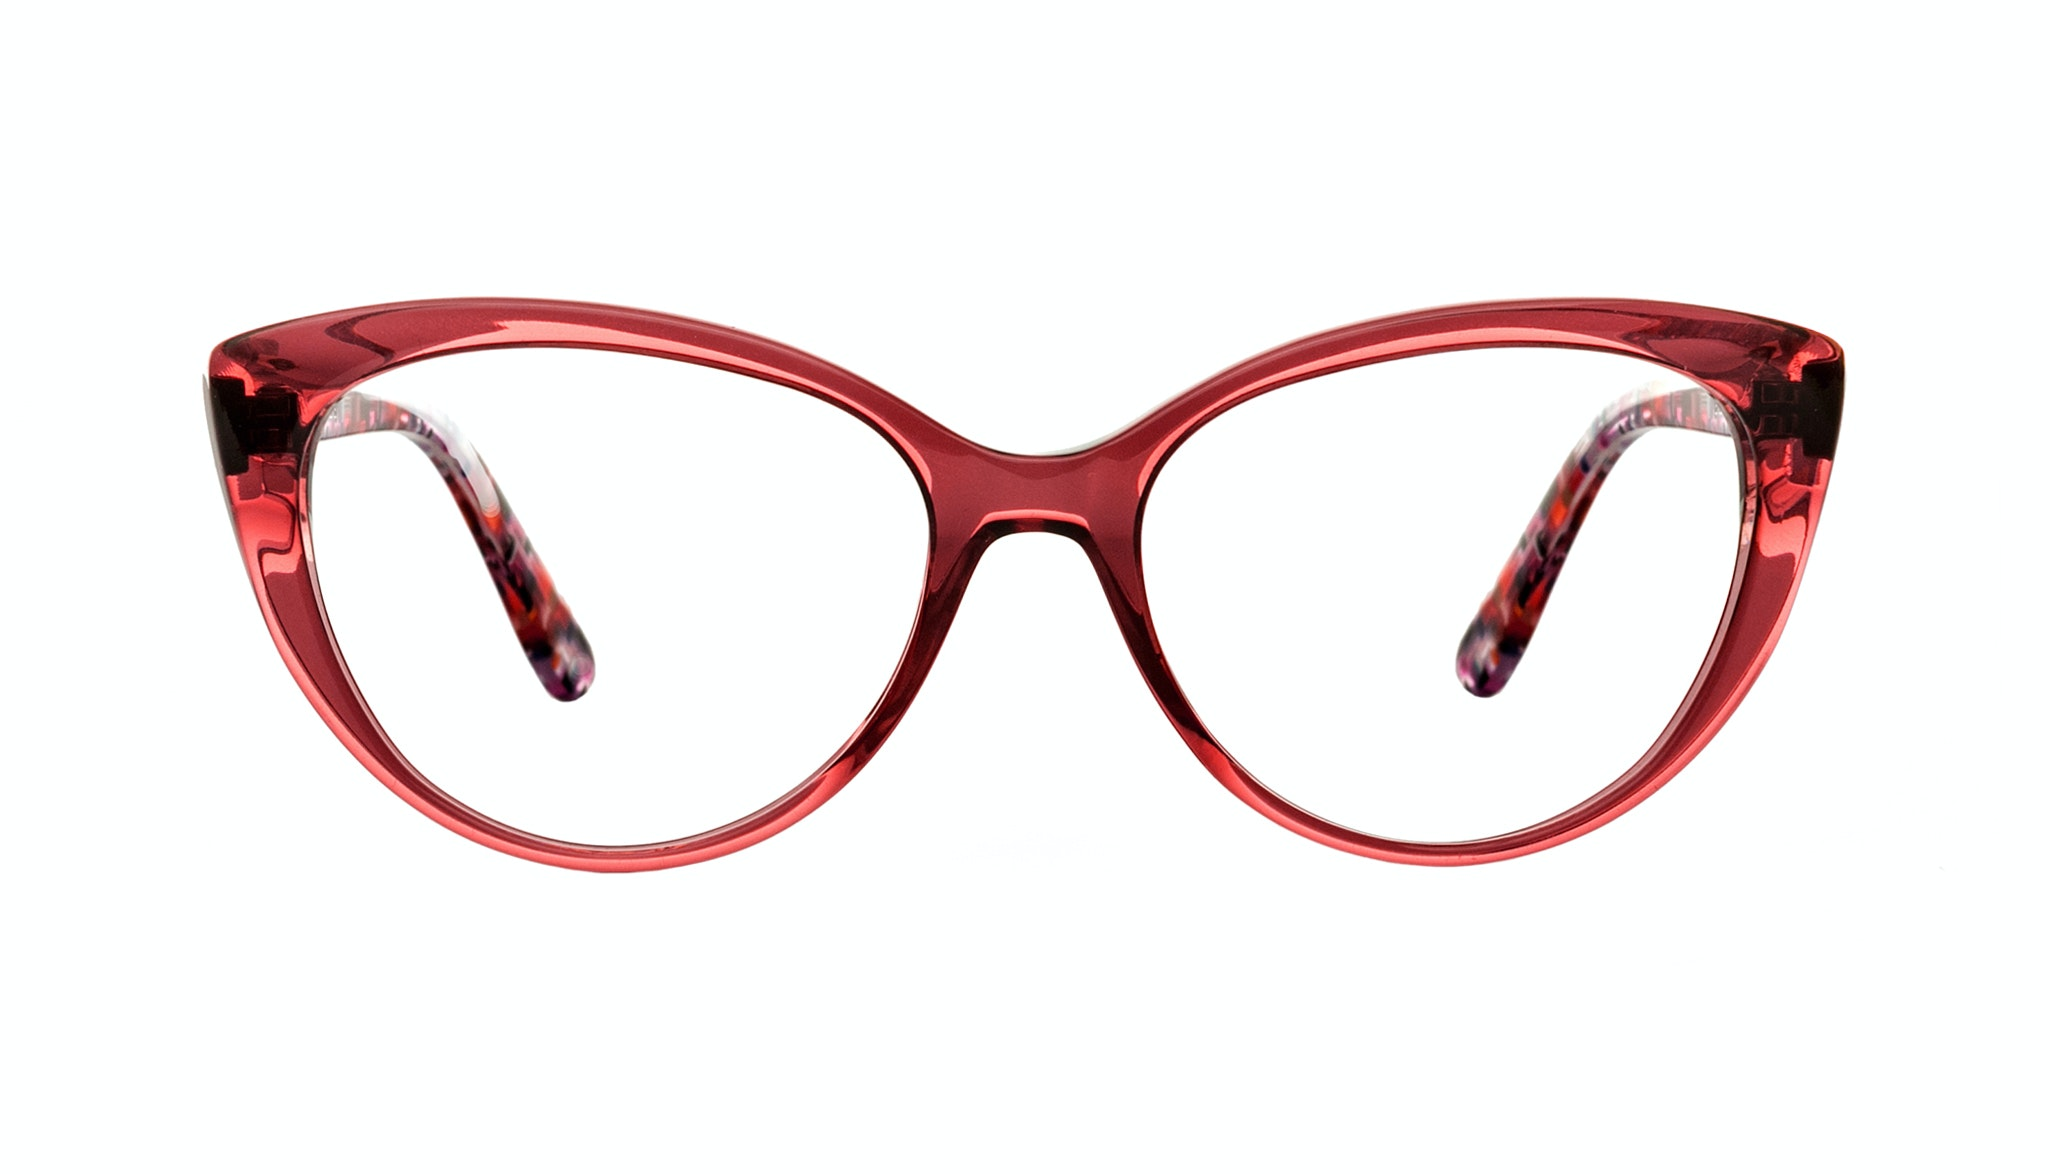 Affordable Fashion Glasses Cat Eye Eyeglasses Women Bliss Pink Berry Front